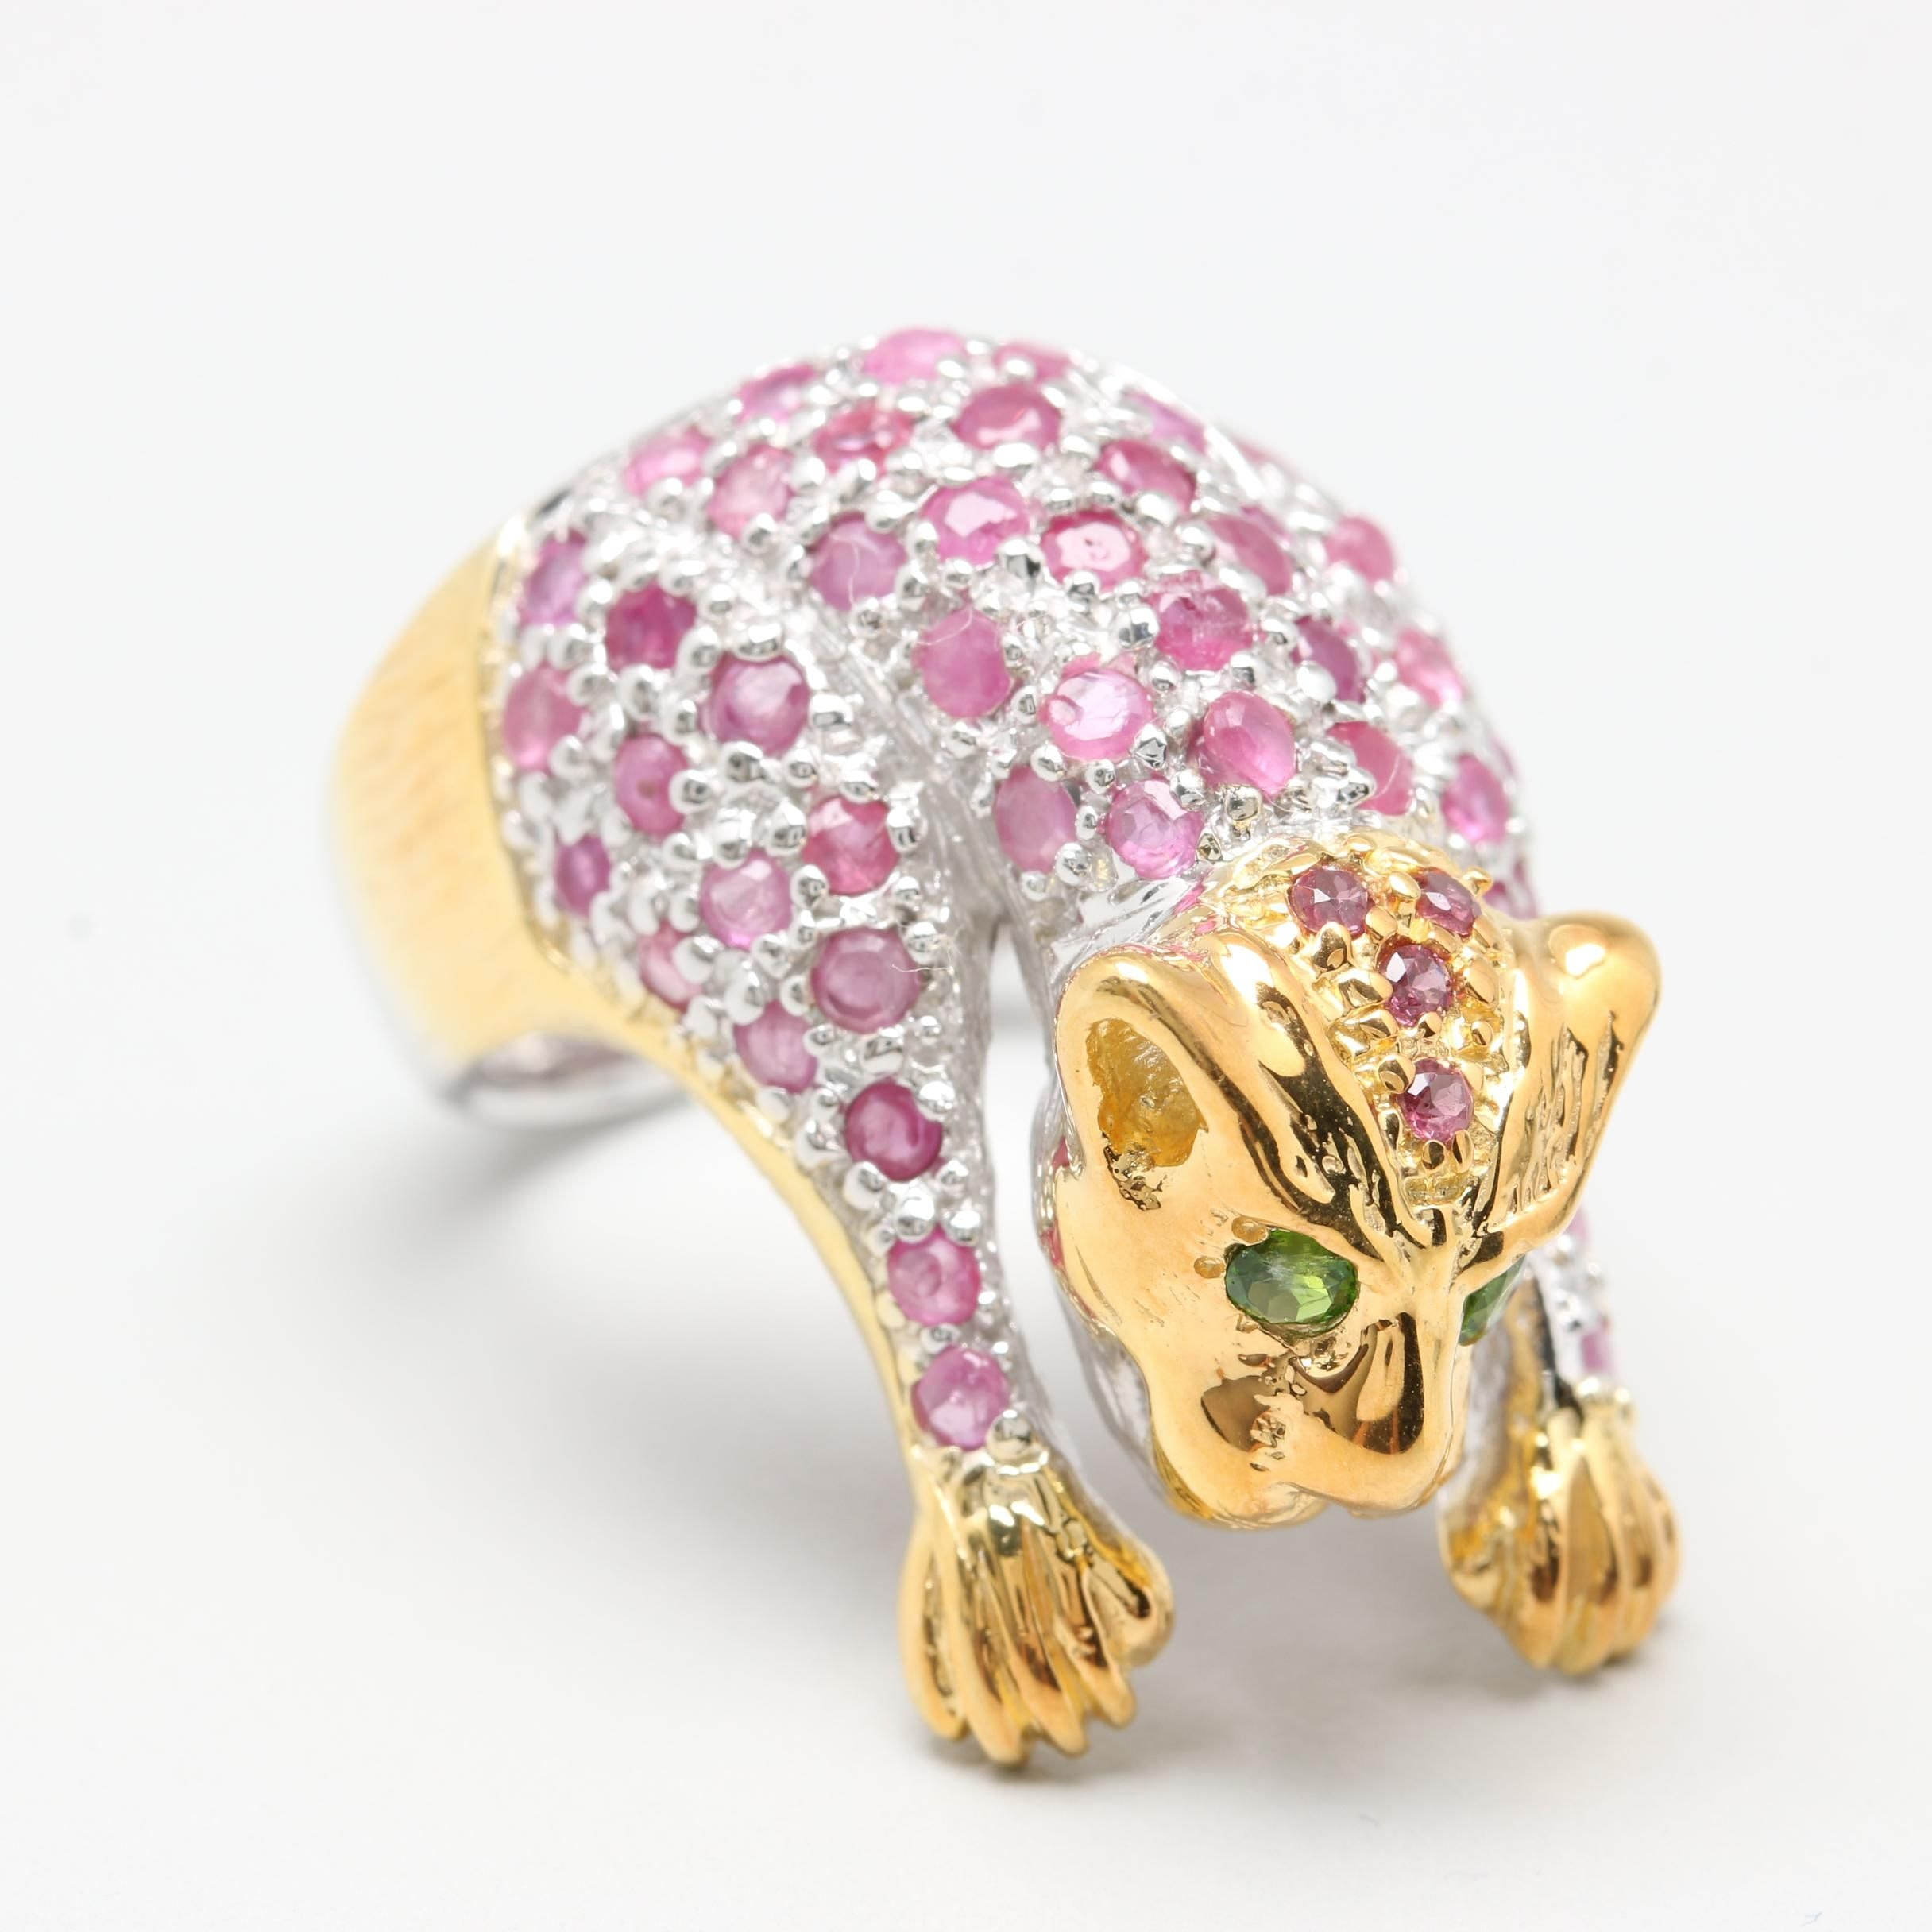 Sterling Silver Ruby, Rhodolite Garnet, and Diopside Cat Ring with Gold Wash